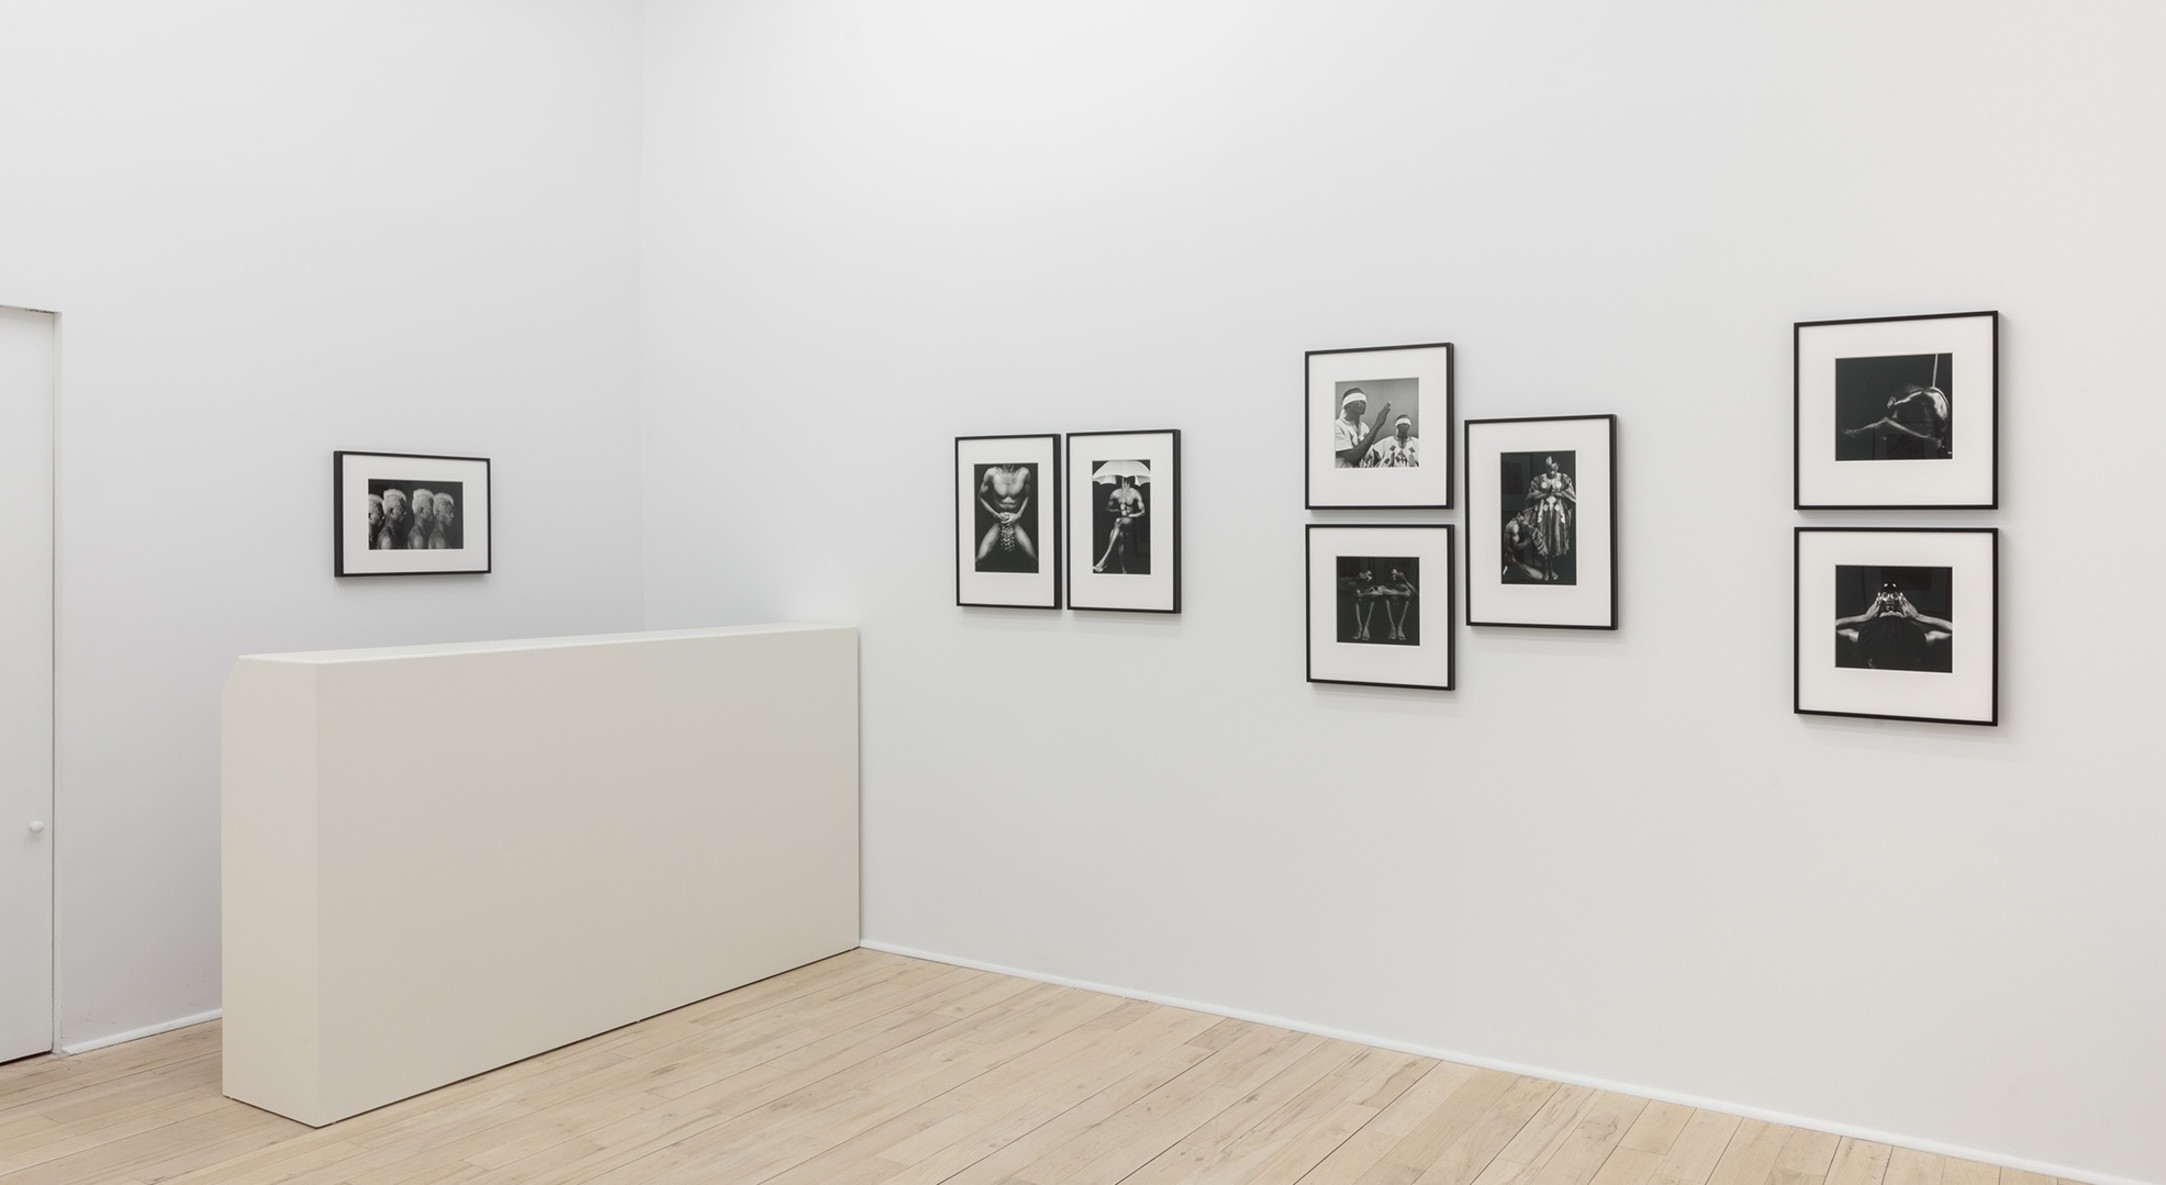 Installation view of Rotimi Fani-Kayode, Rage & Desire at Hales Project Room, New York, 2018